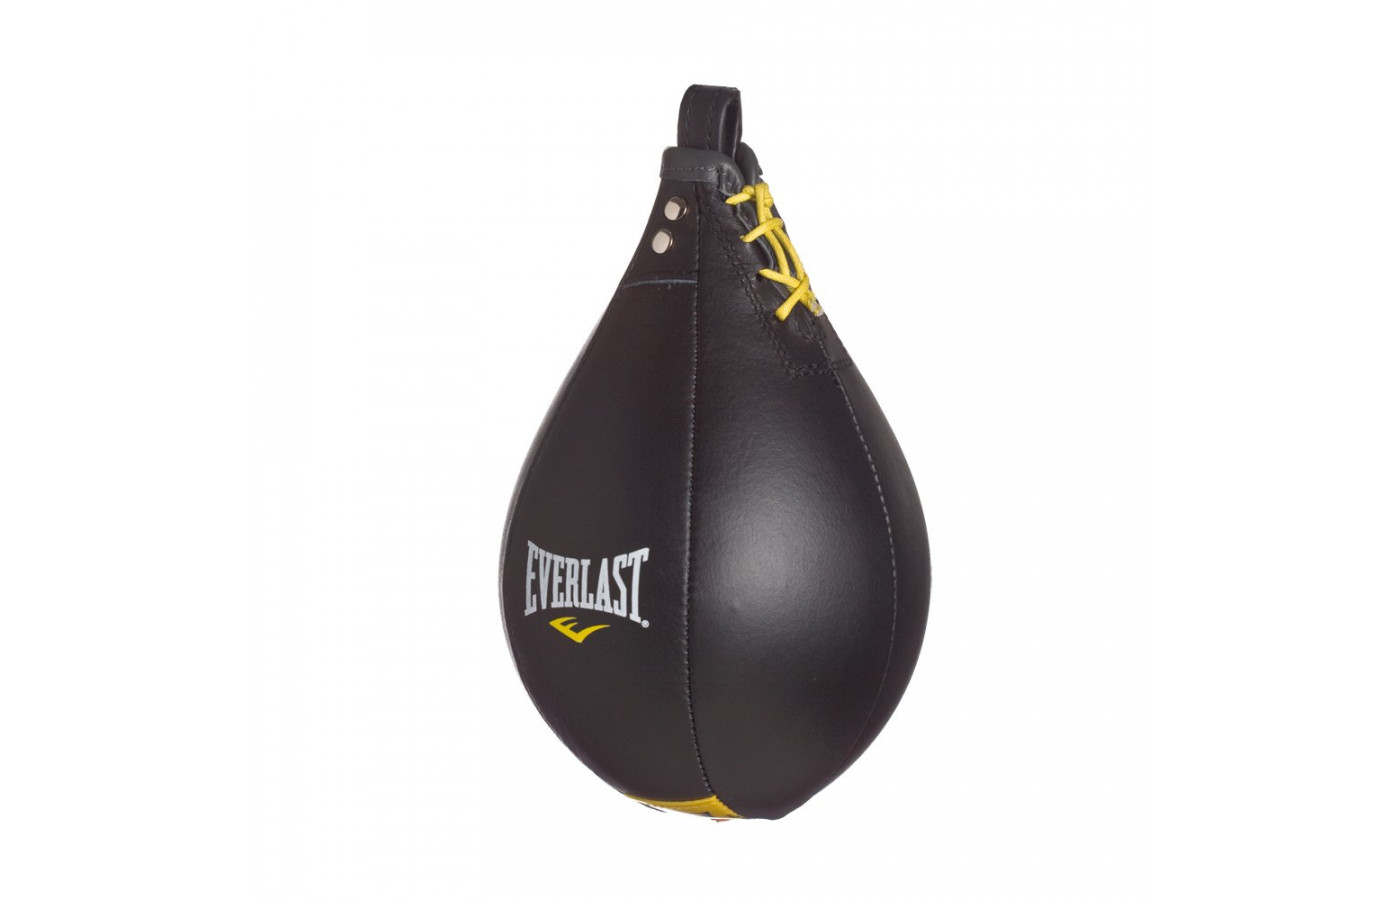 Everlast Kangaroo Speed Bag